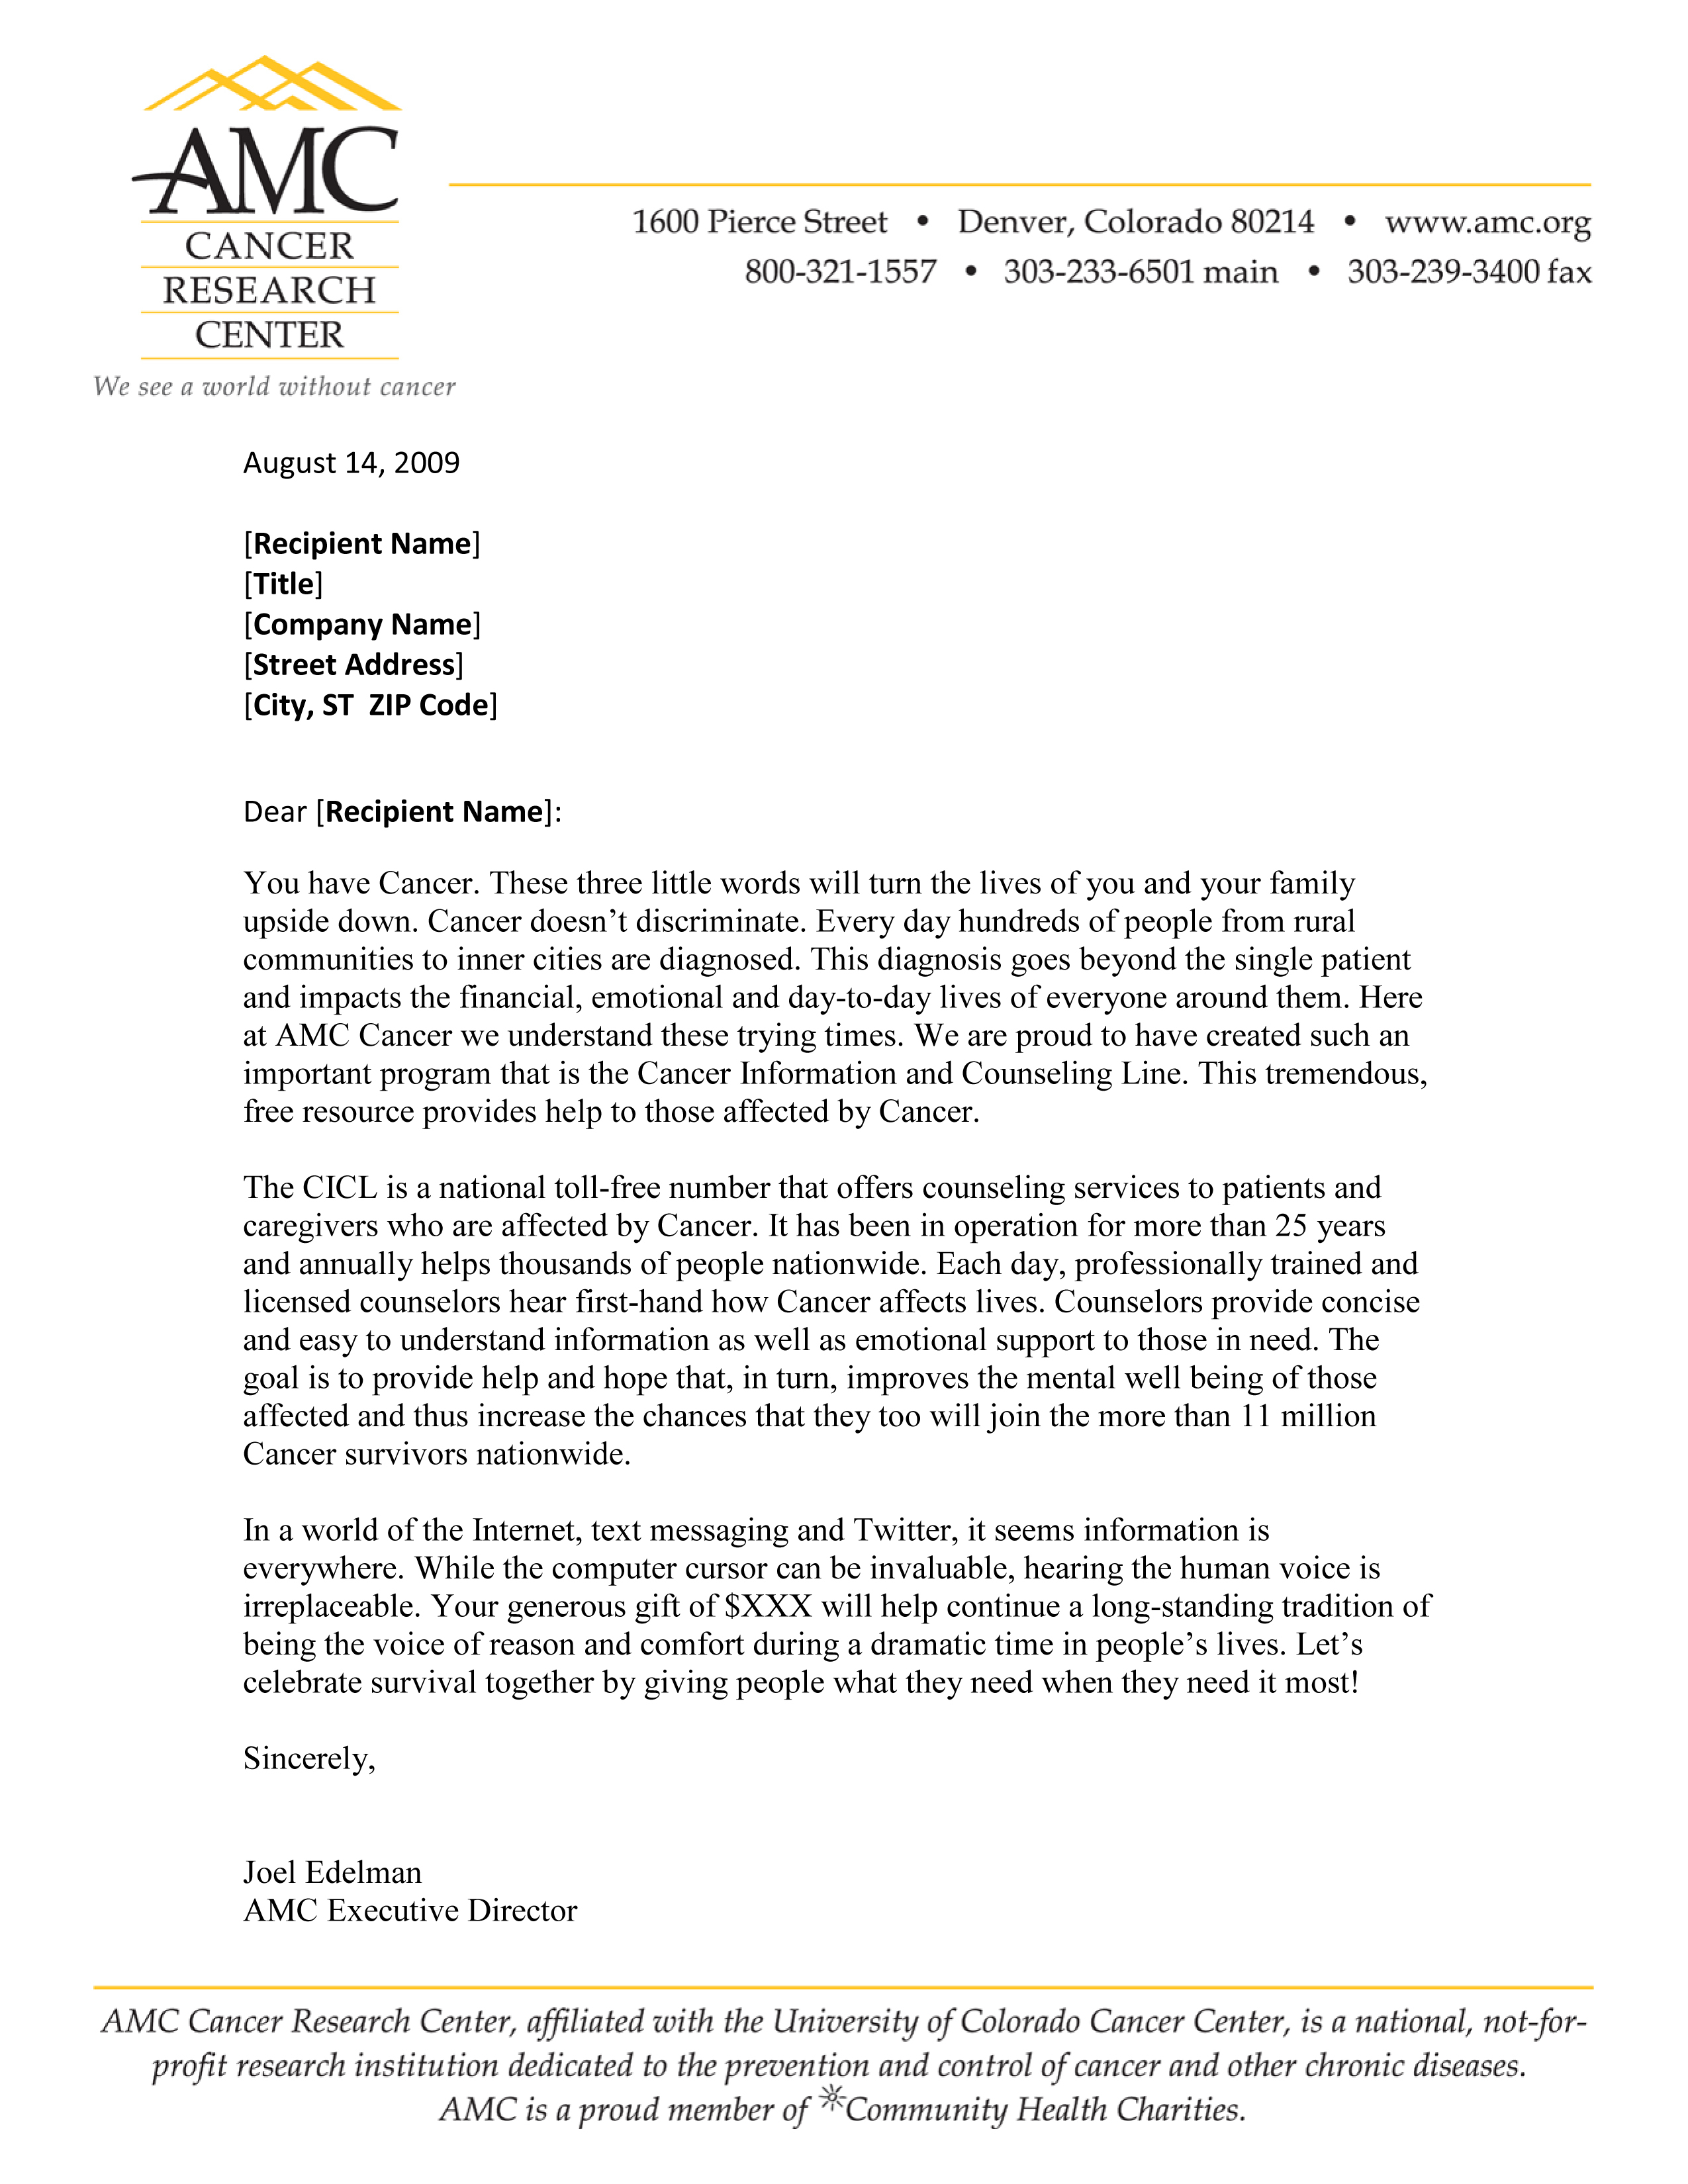 Investment Letter Of Intent.Letter Of Intent Investment Template Collection Letter Template